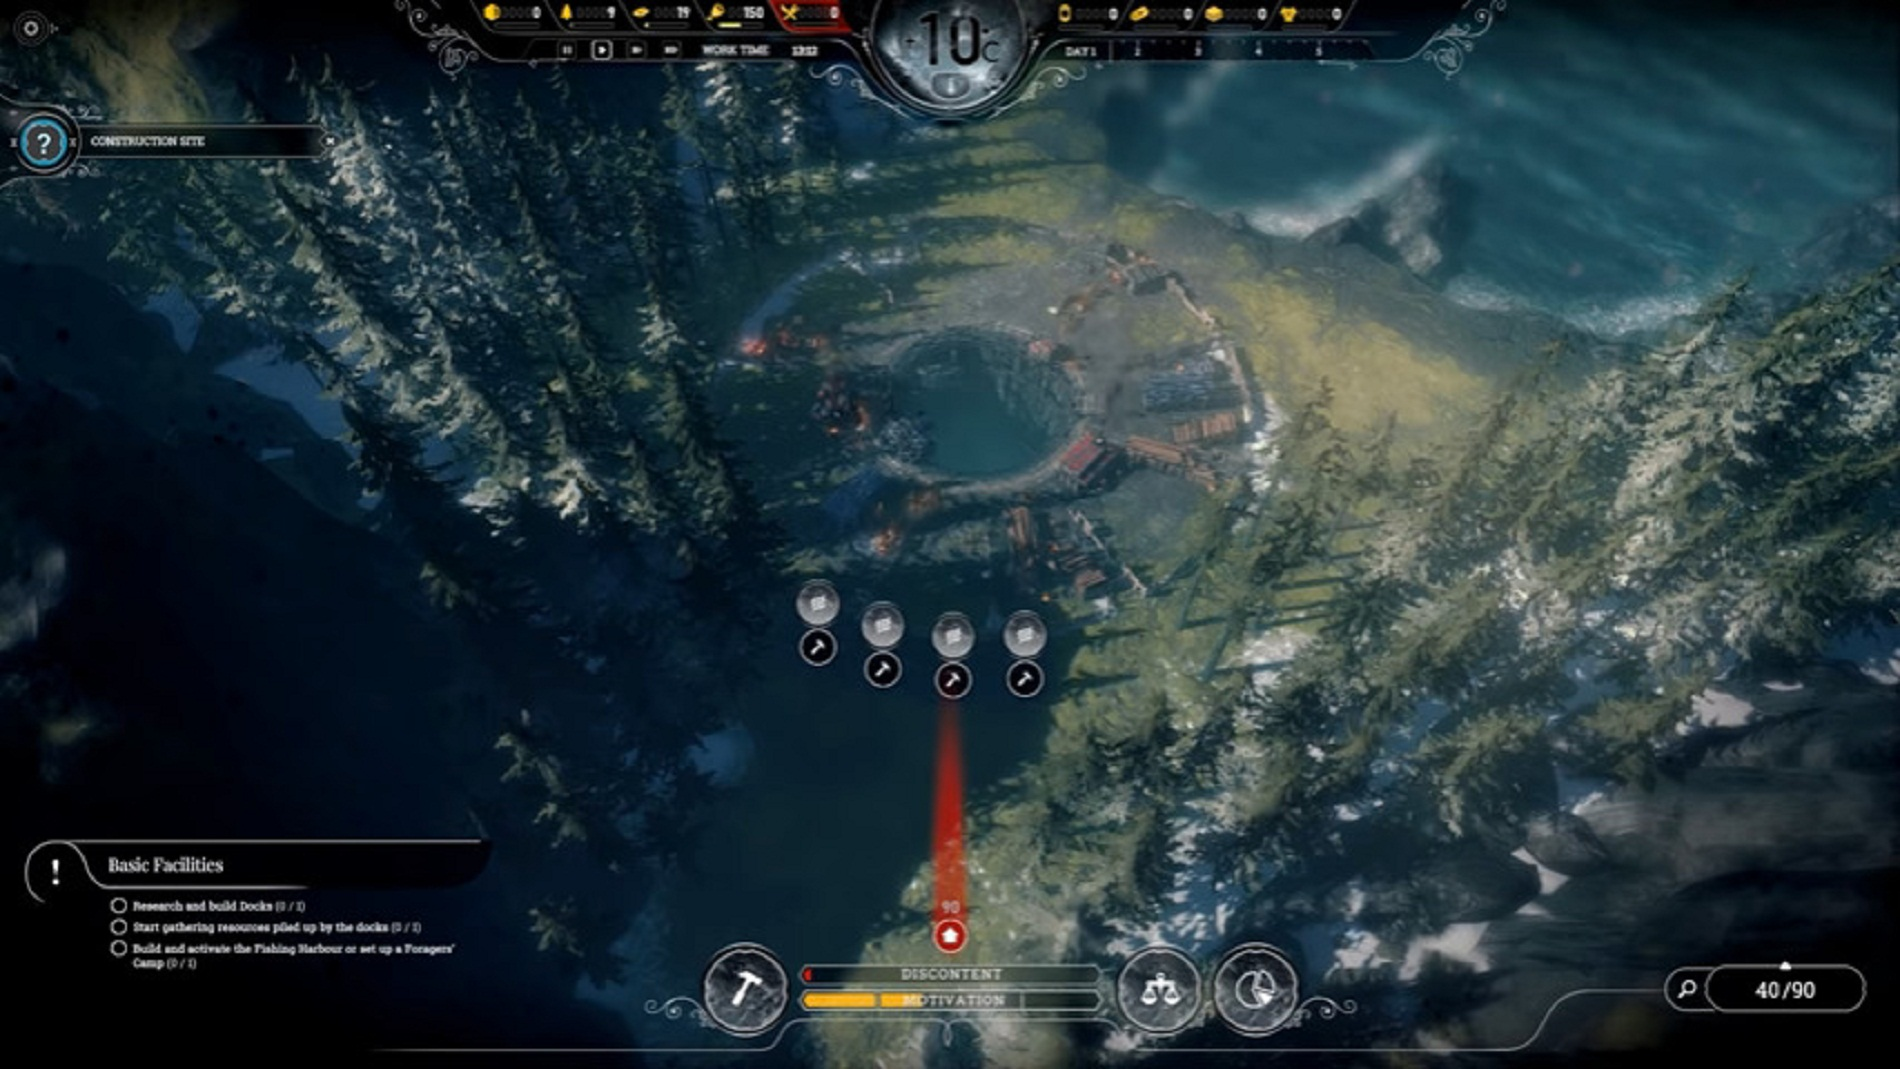 Frostpunk's : The Last Autumn New DLC Gets A PreLaunch 12 Minute Gameplay Video With The Lead Dev's Commentary